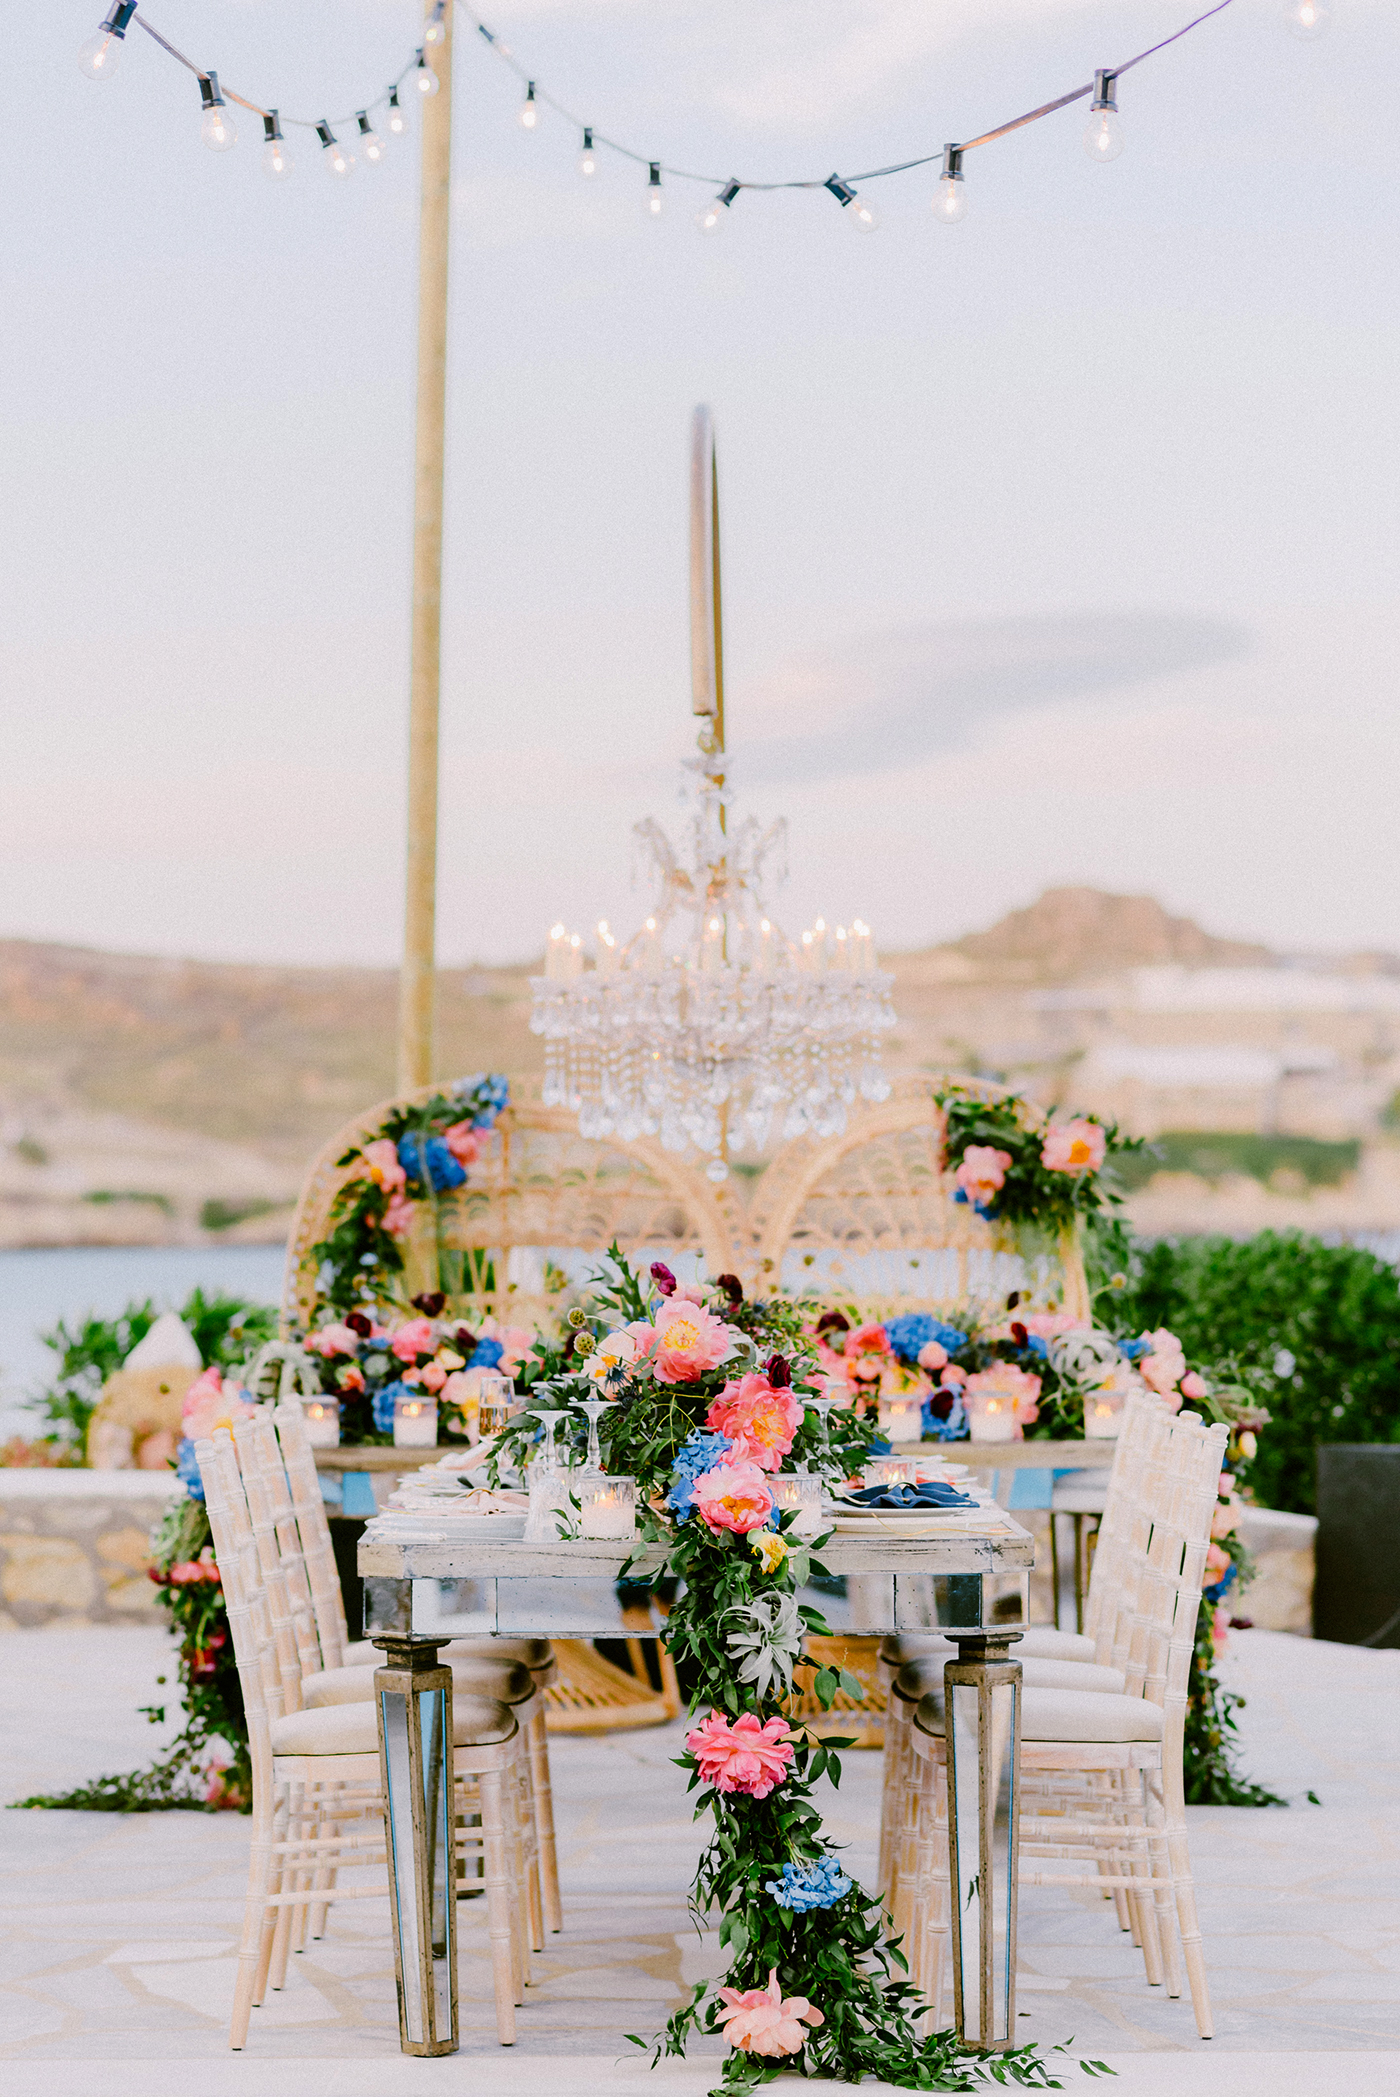 unique wedding color blue and pink floral garlands on table setting in southwest america